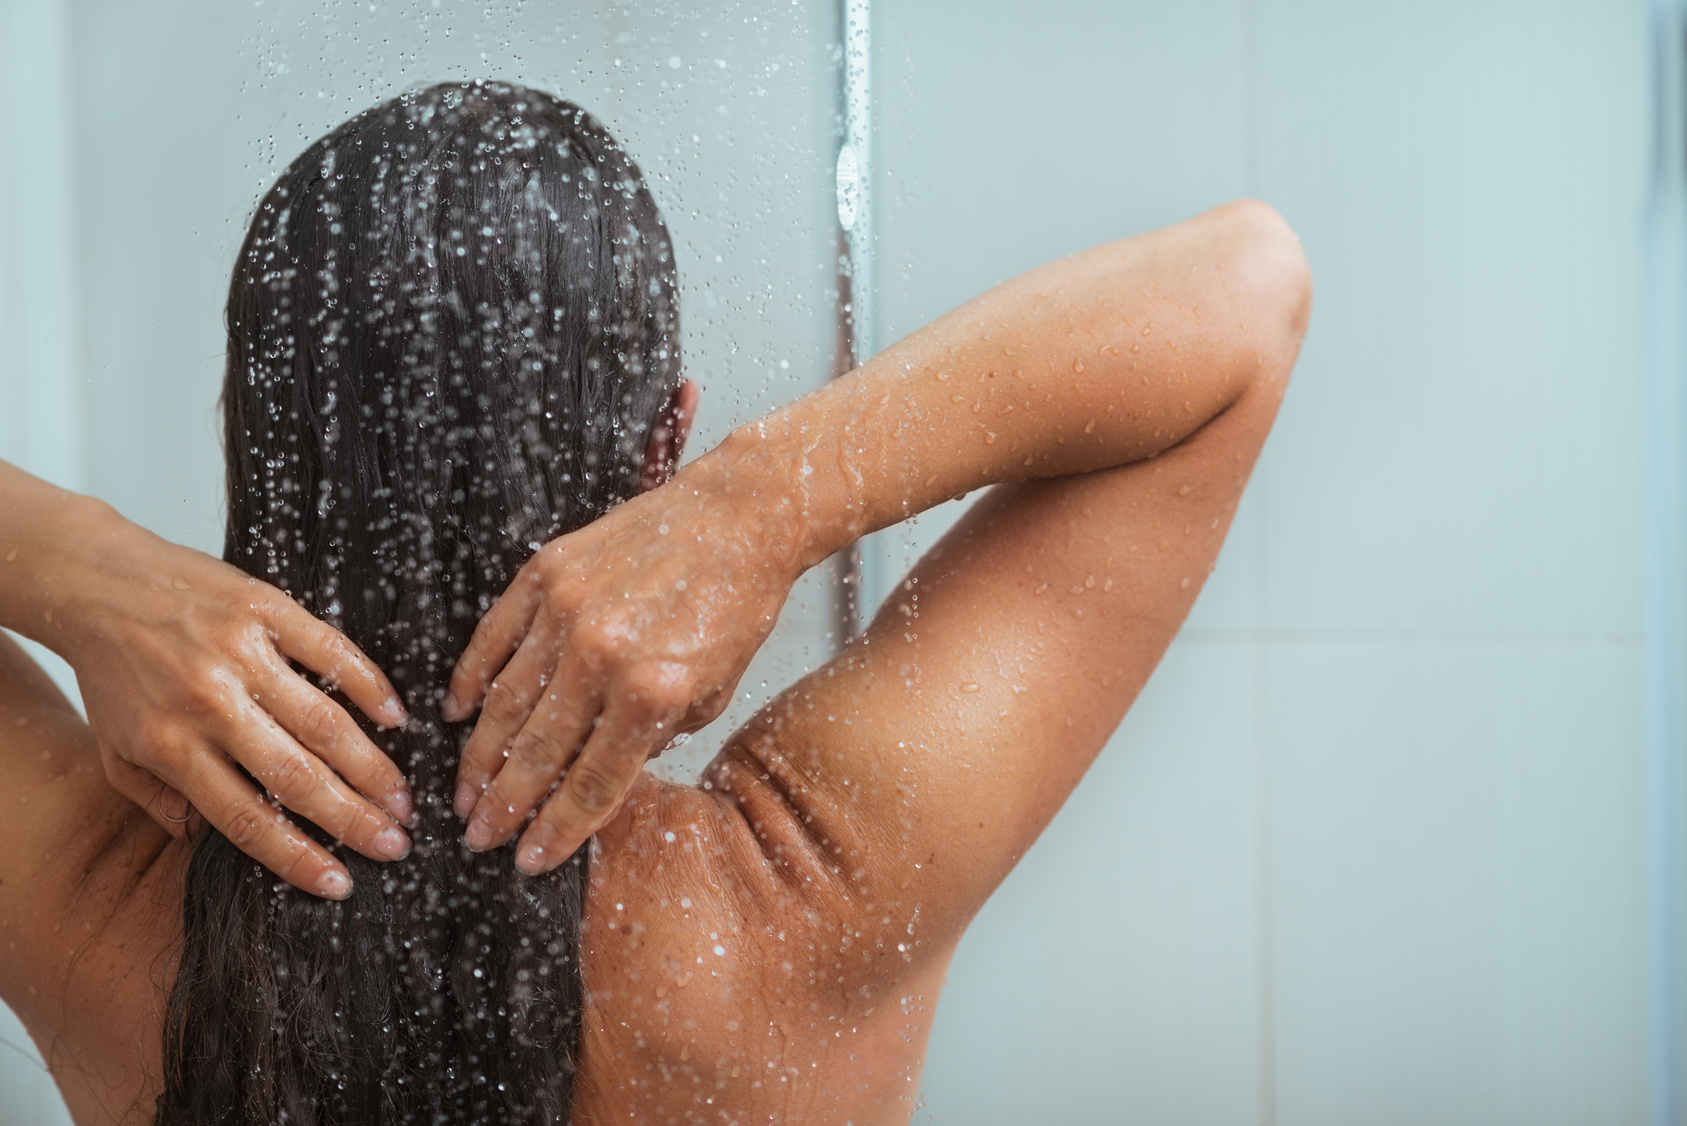 Woman washing long hair in shower under water jet